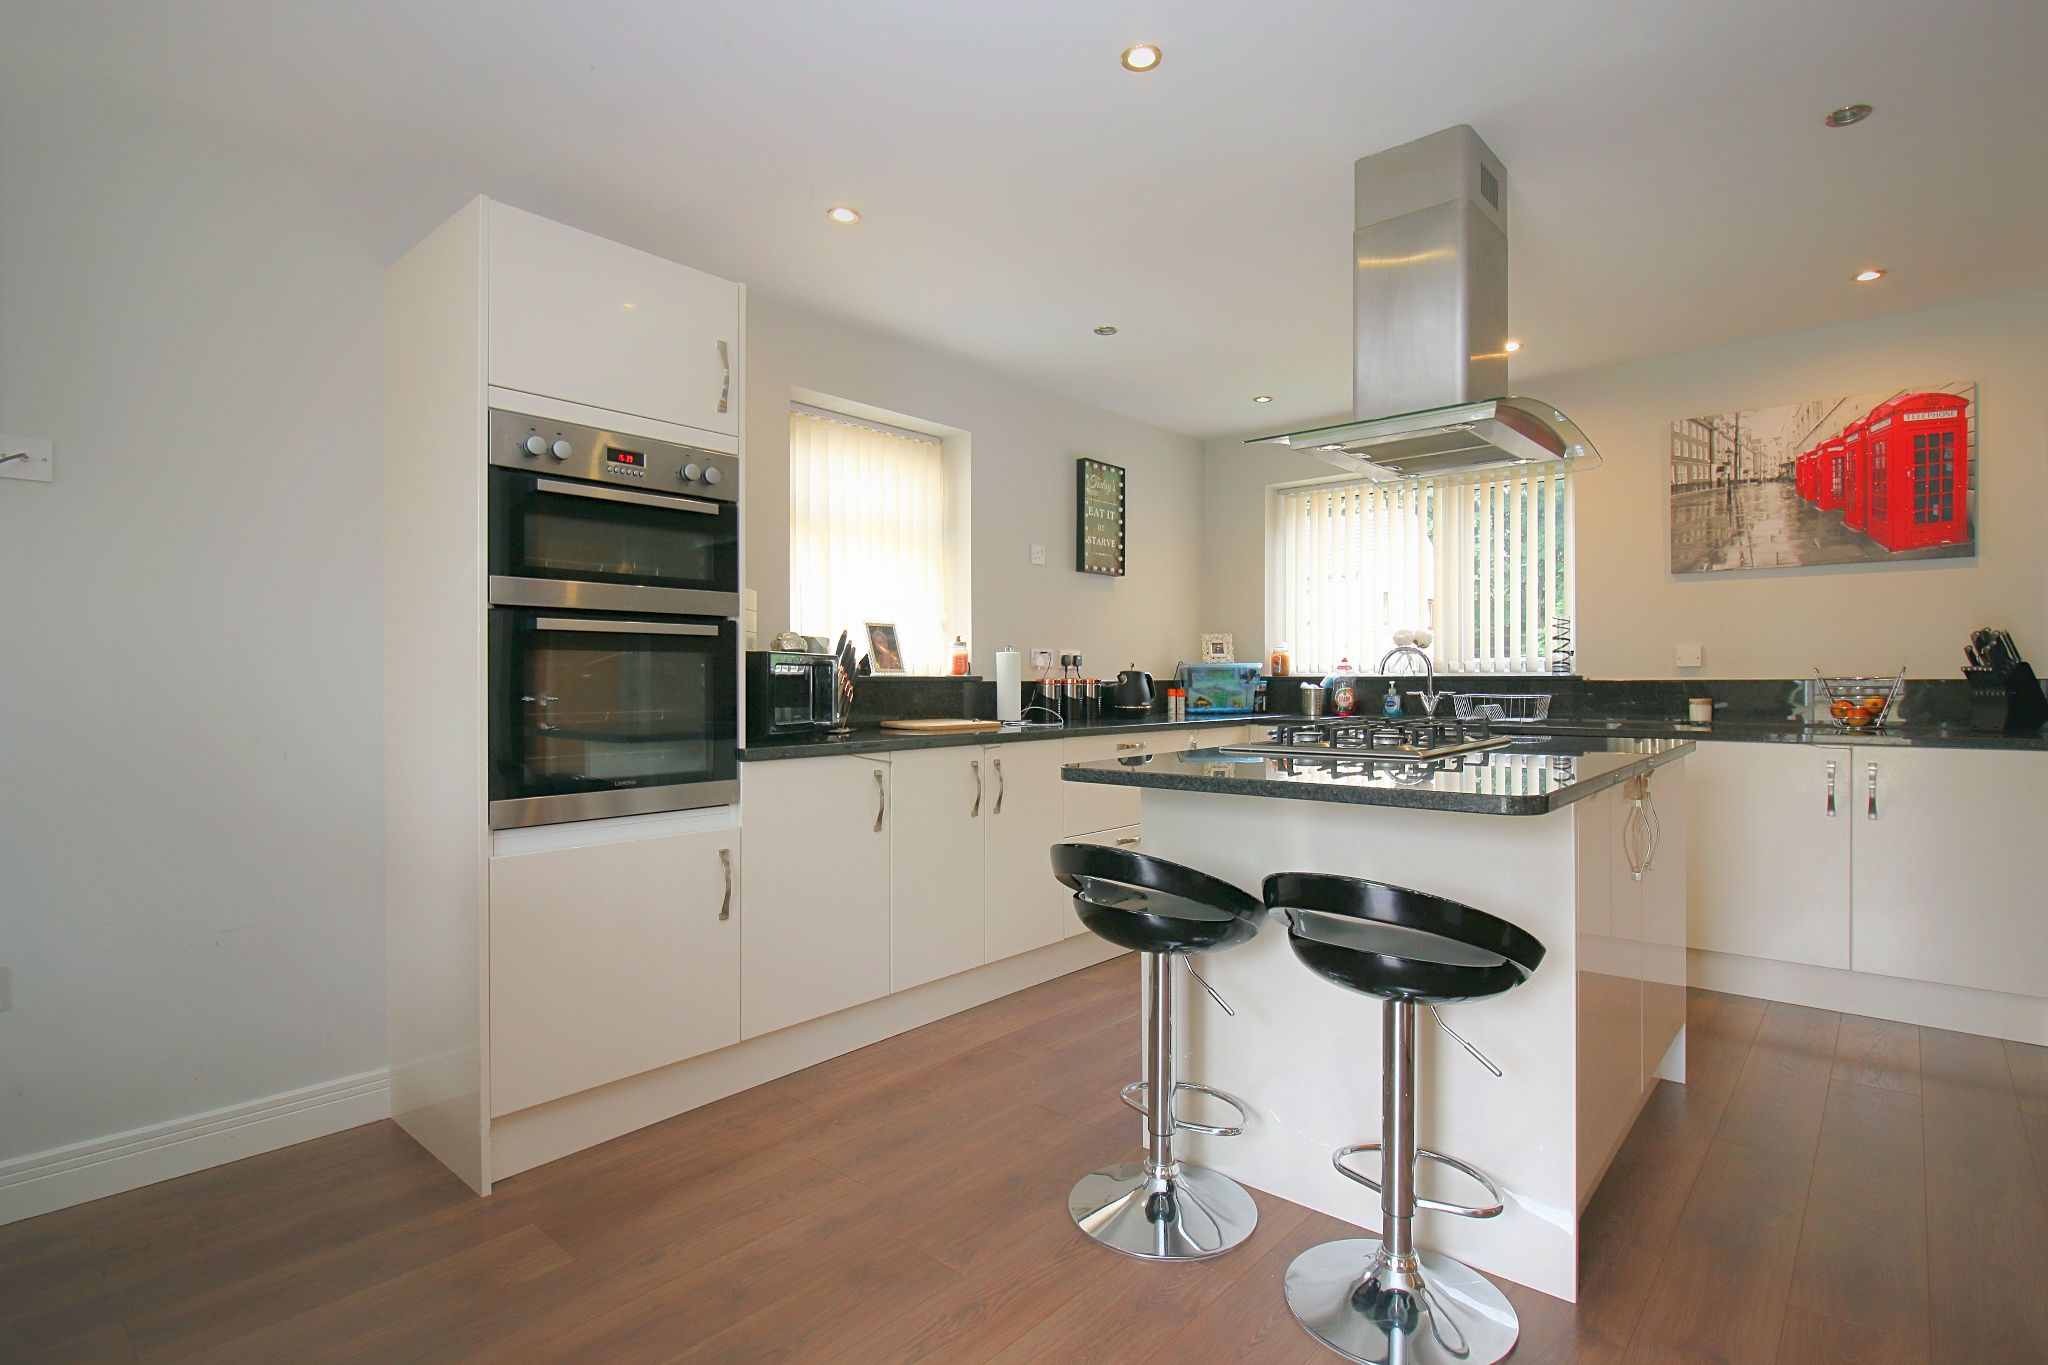 6 Bedroom Detached House For Sale - Photograph 13